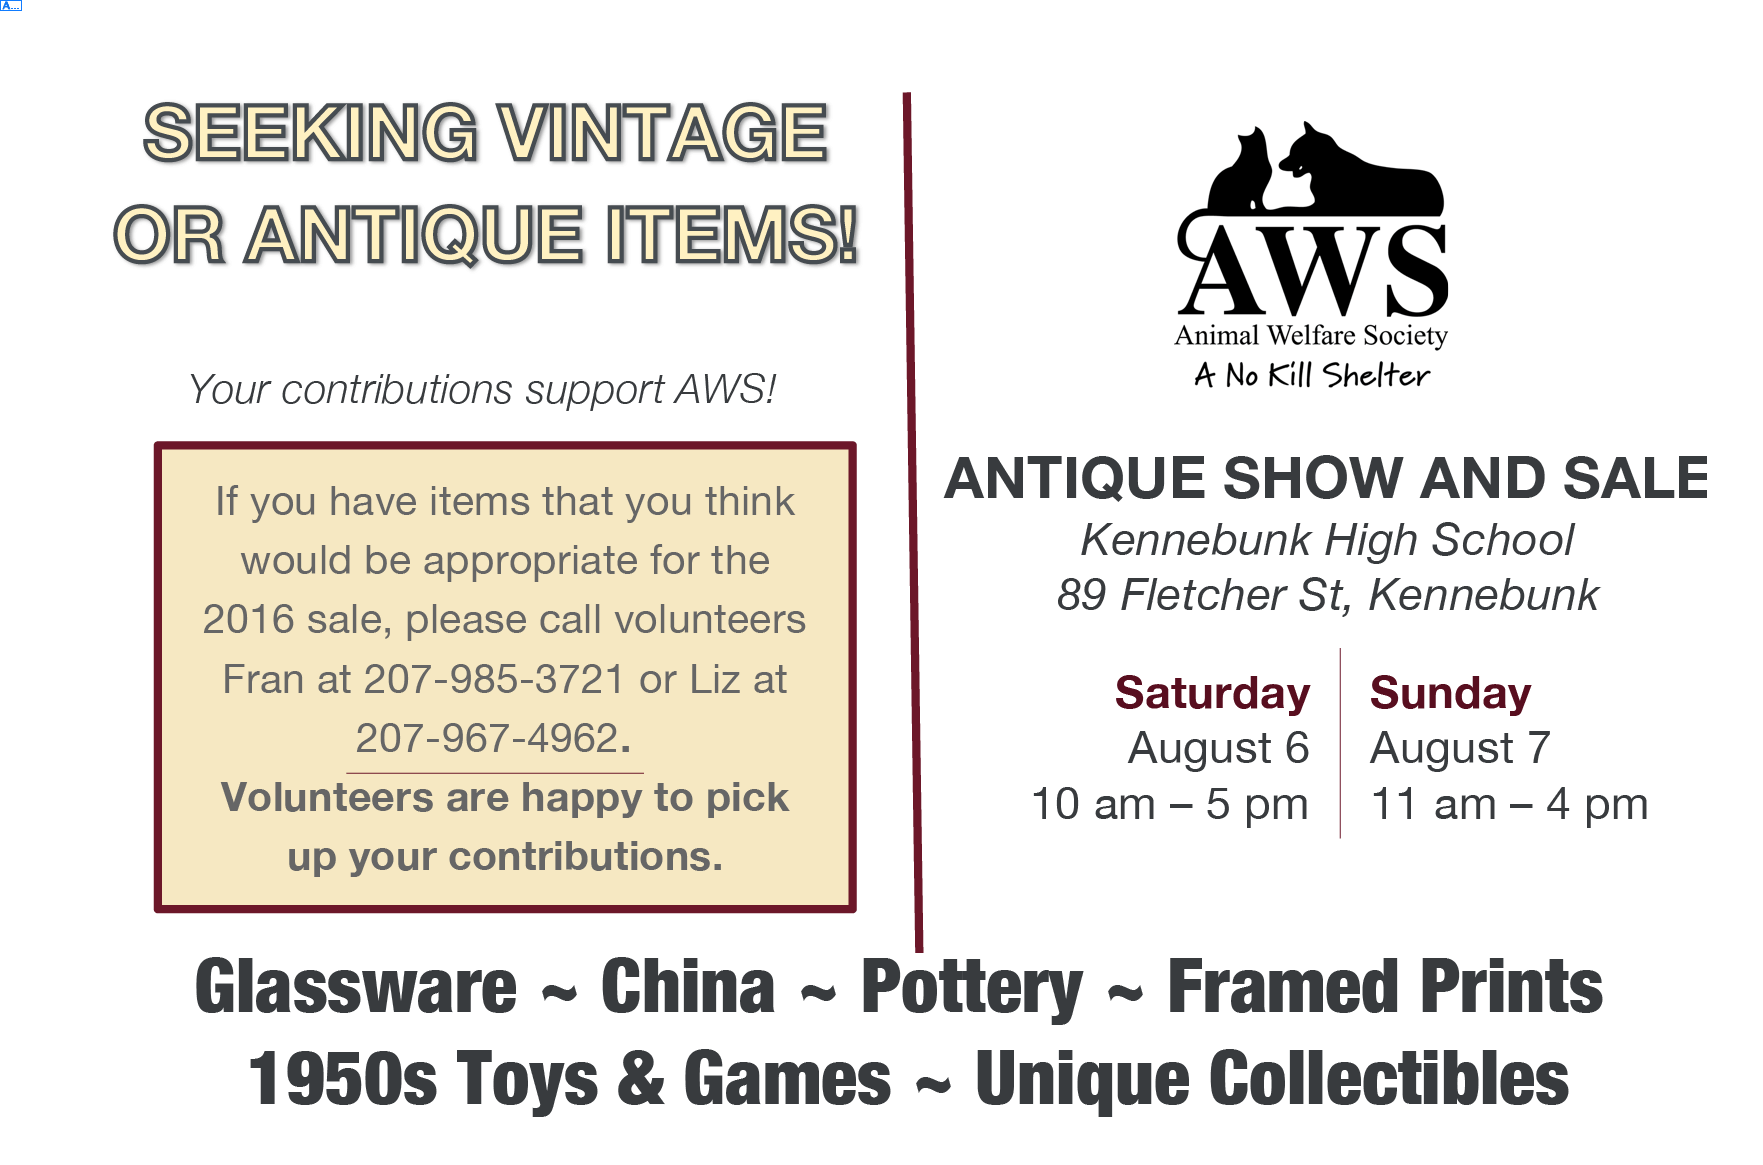 Seeking vintage or antique items. Your contributions support AWS. Contact volunteers Fran at 207-985-3721 or Liz at 207-967-4962 if you have items to donate.